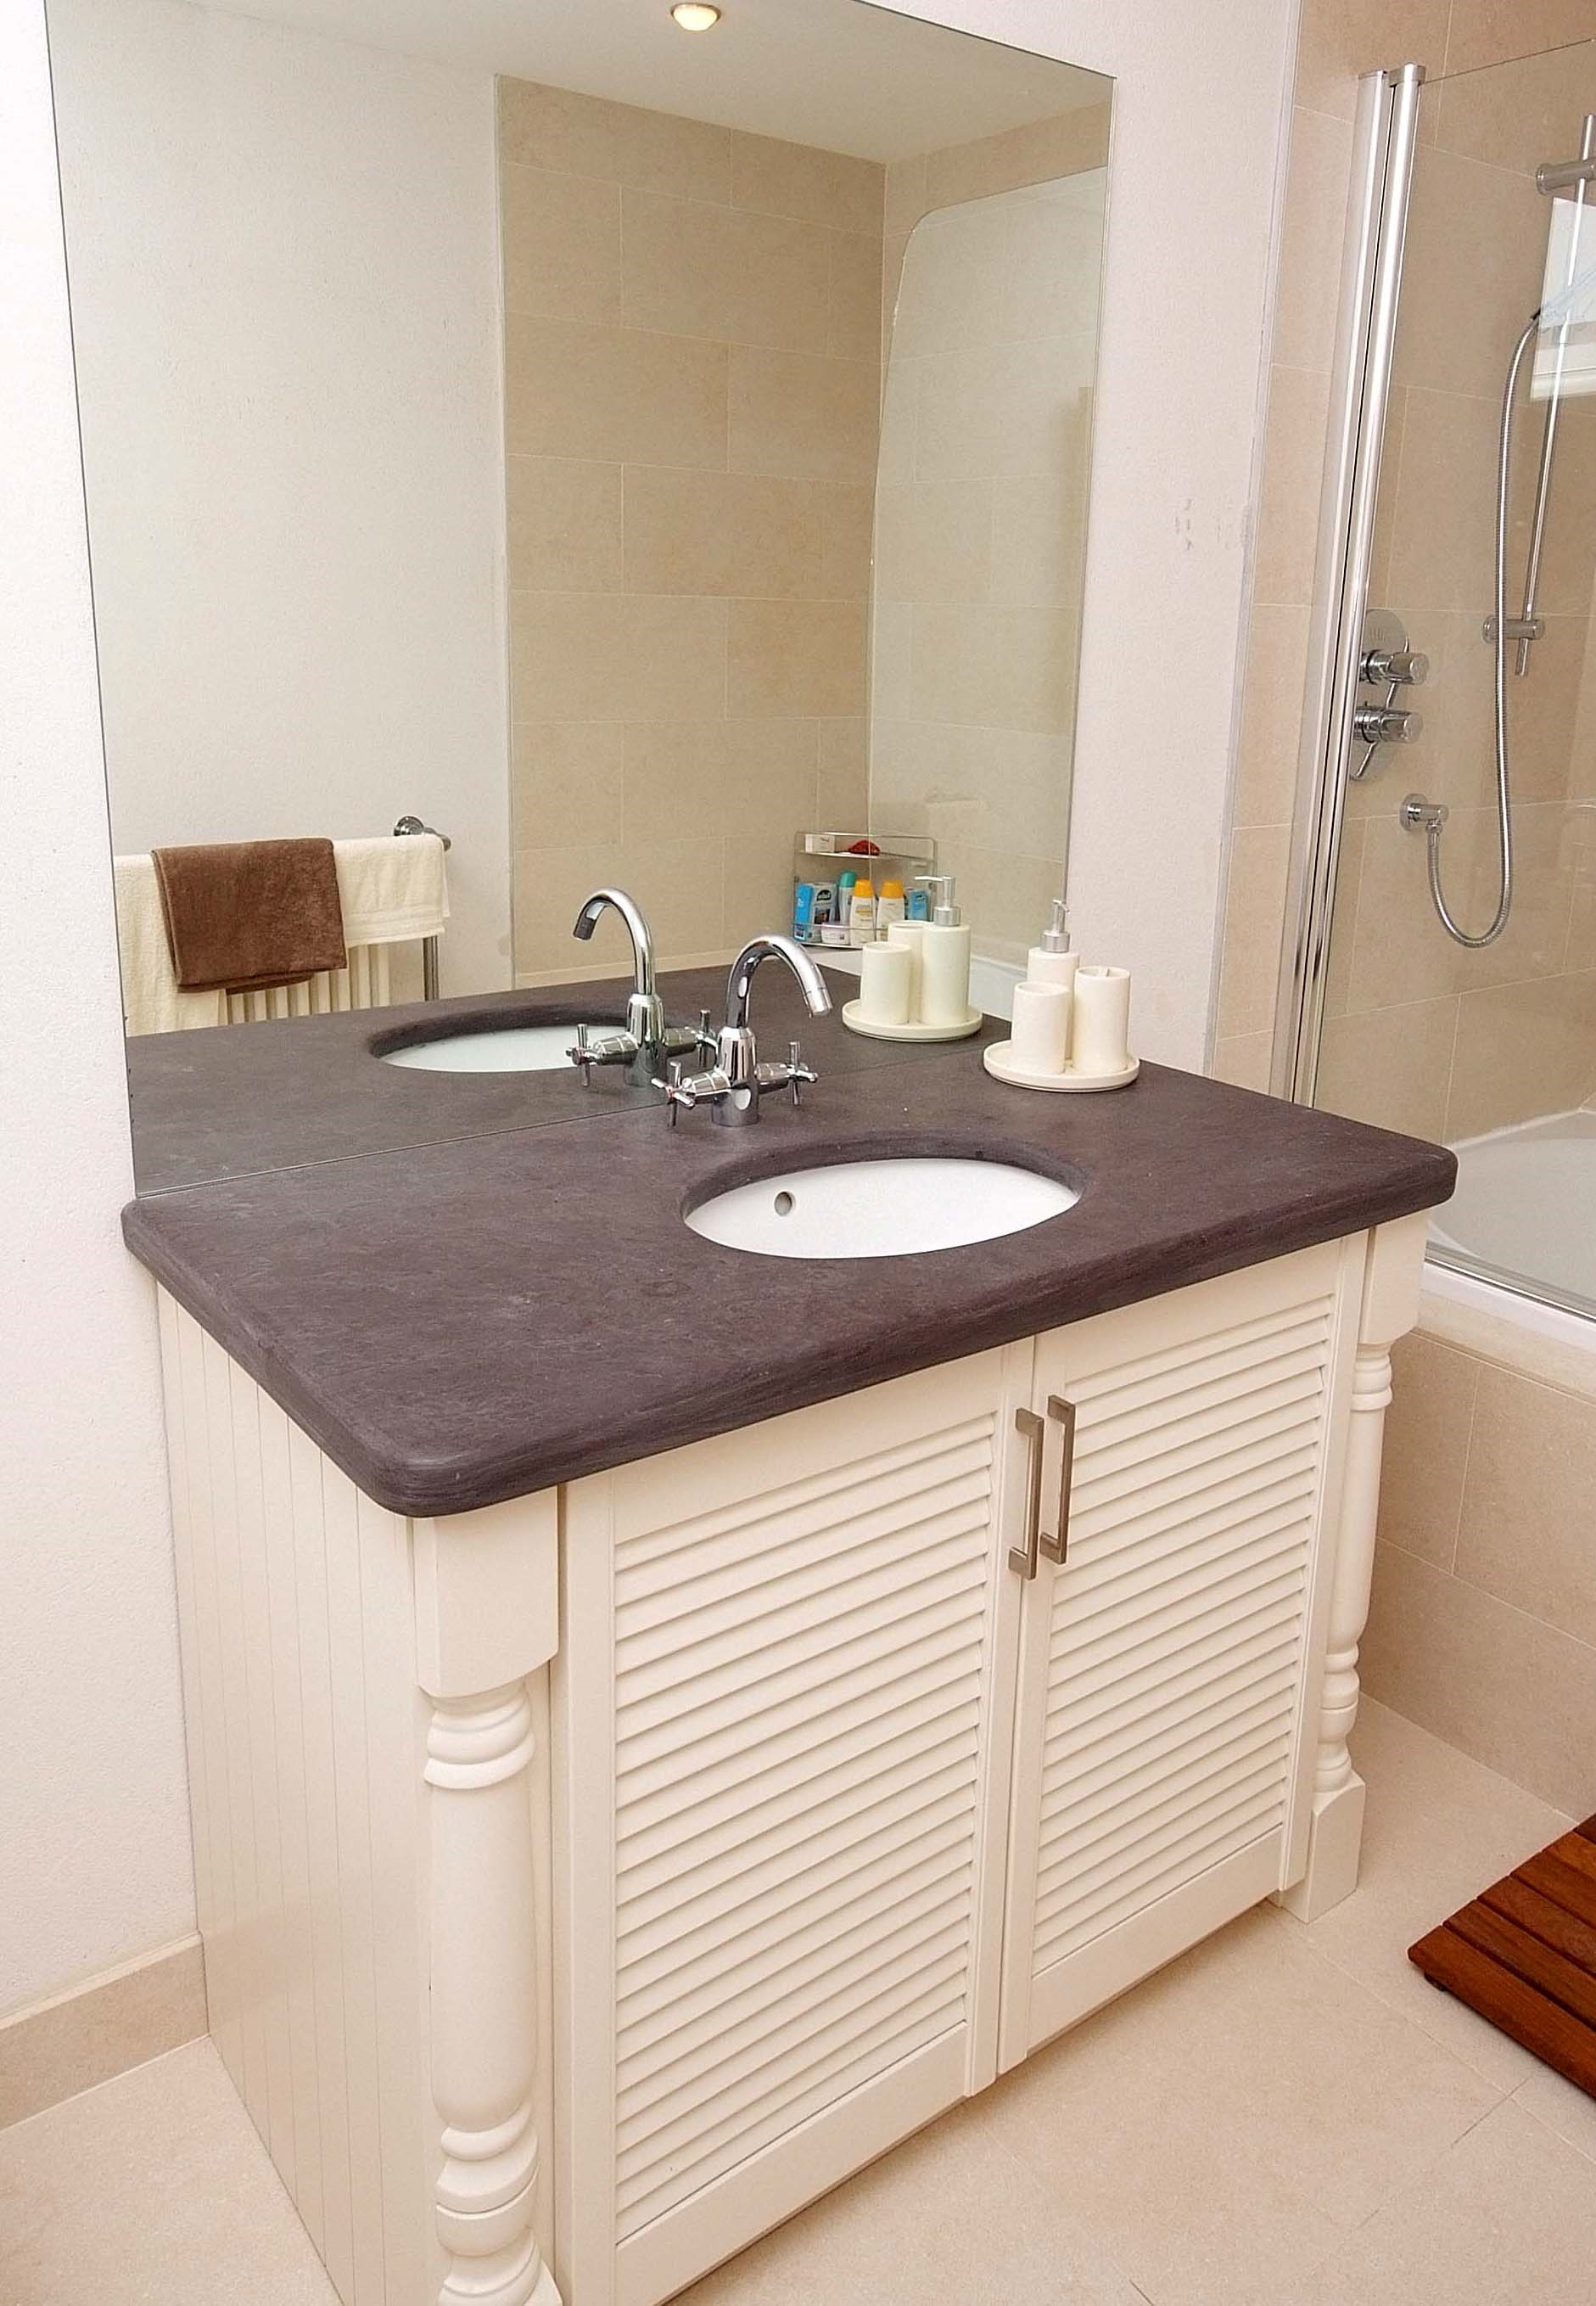 Solid Ash painted vanity unit with 40mm Valentia slate counter top.